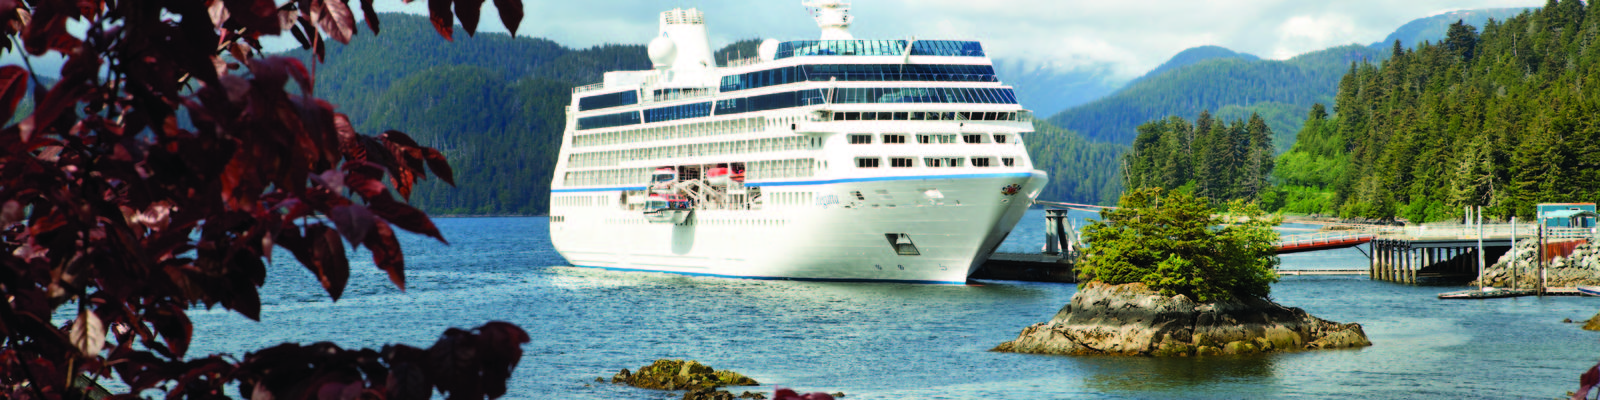 Oceania's Regatta in Alaska (Photo: Oceania Cruises)